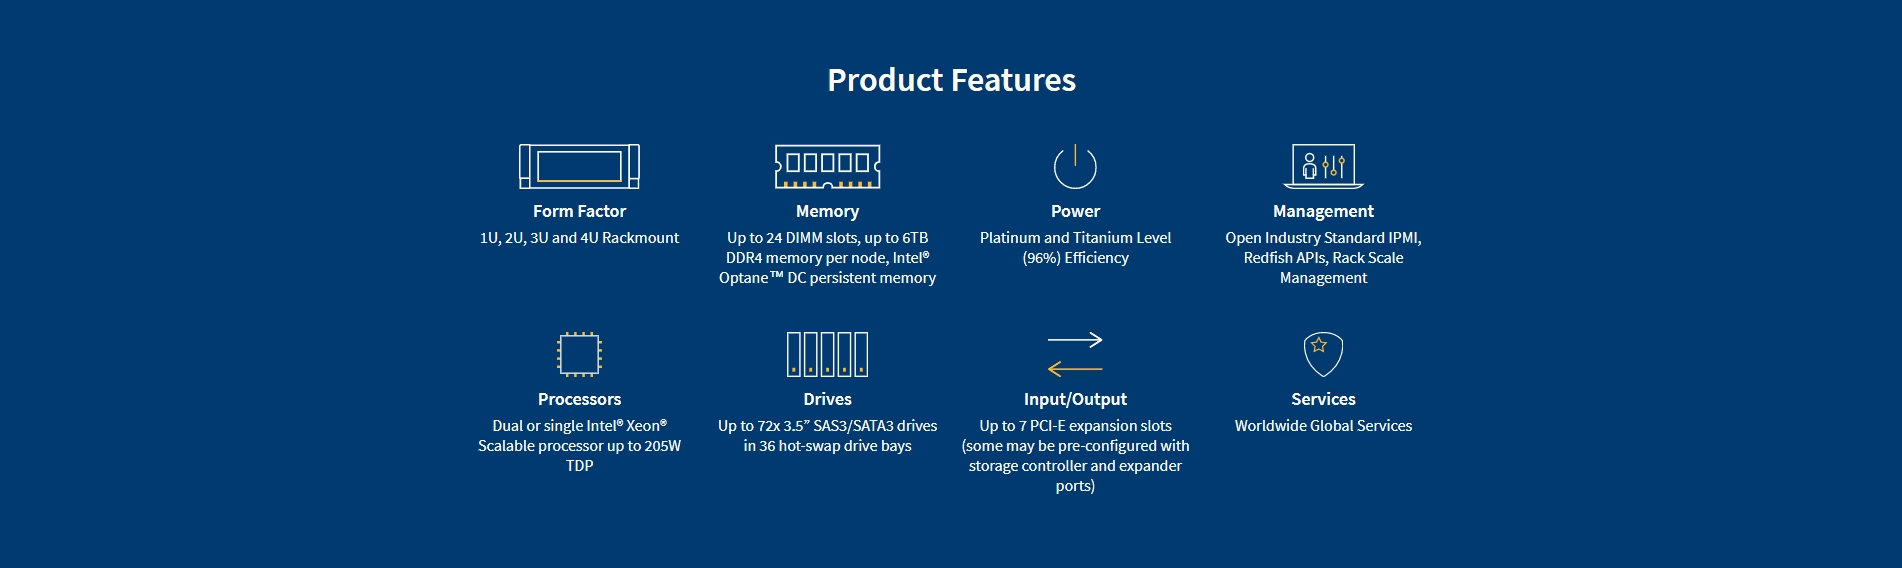 ProductFeatures2